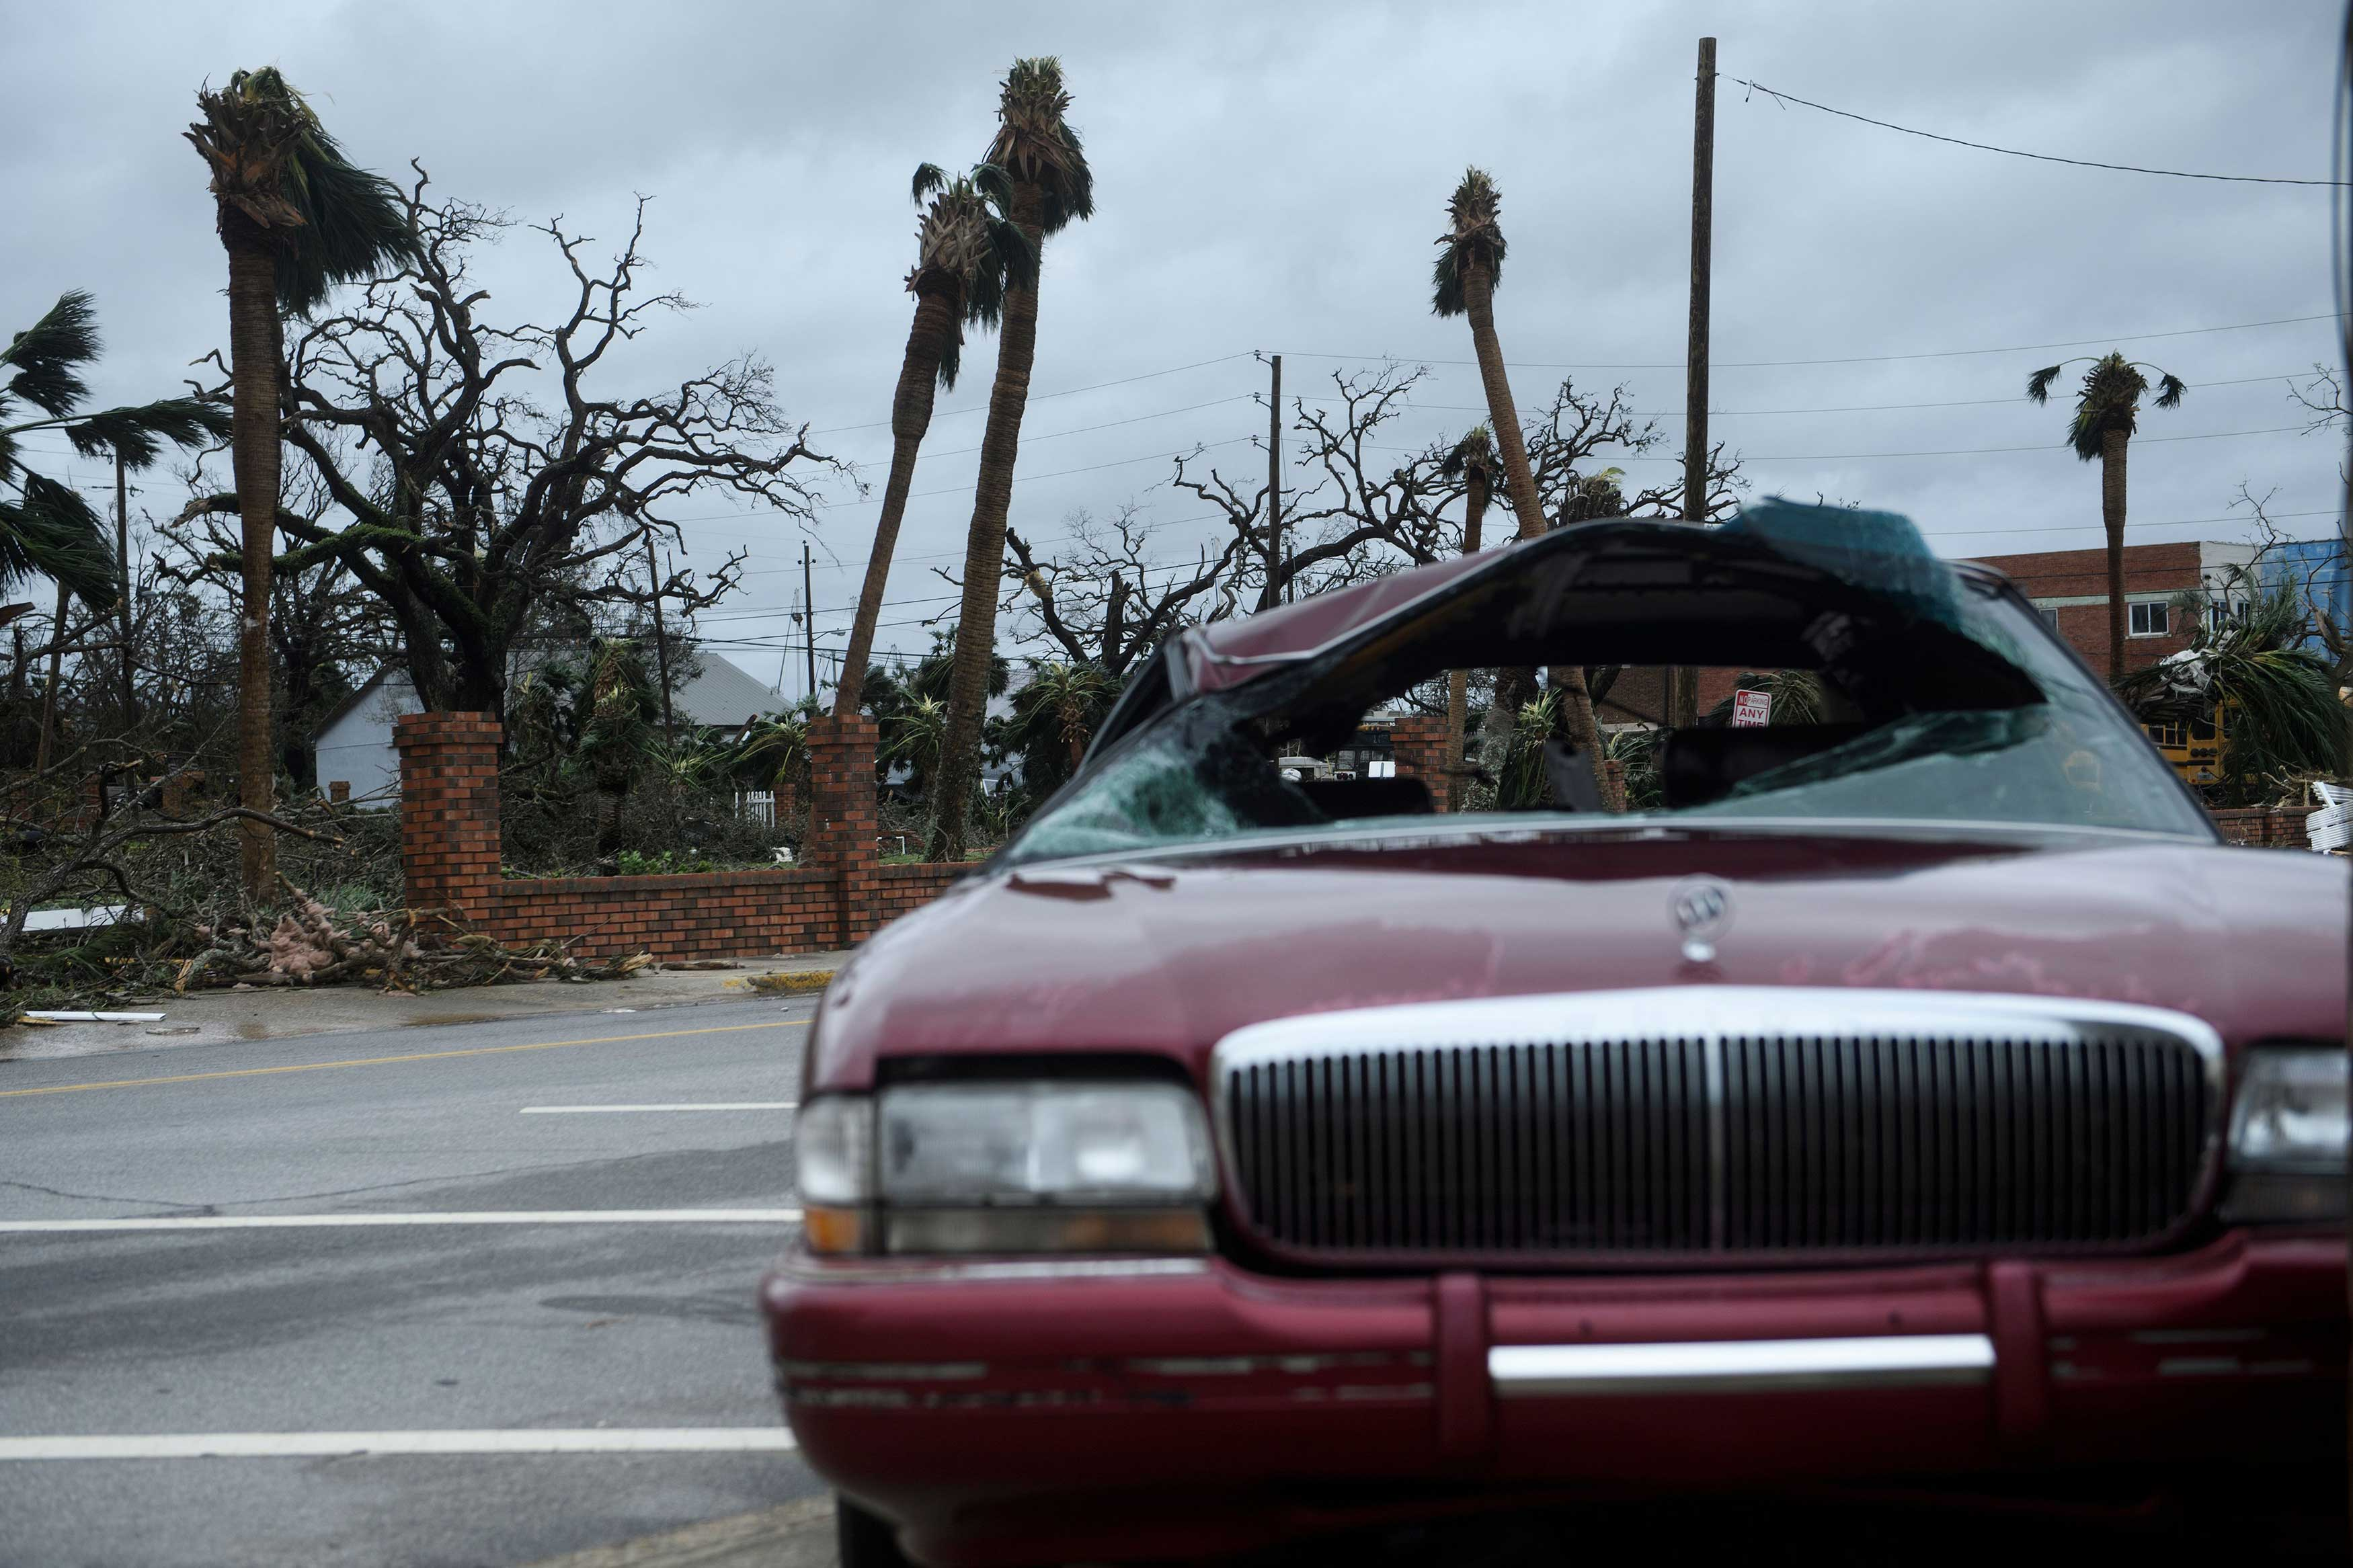 Storm damage is seen after Hurricane Michael Oct. 10, 2018 in Panama City, Fla.